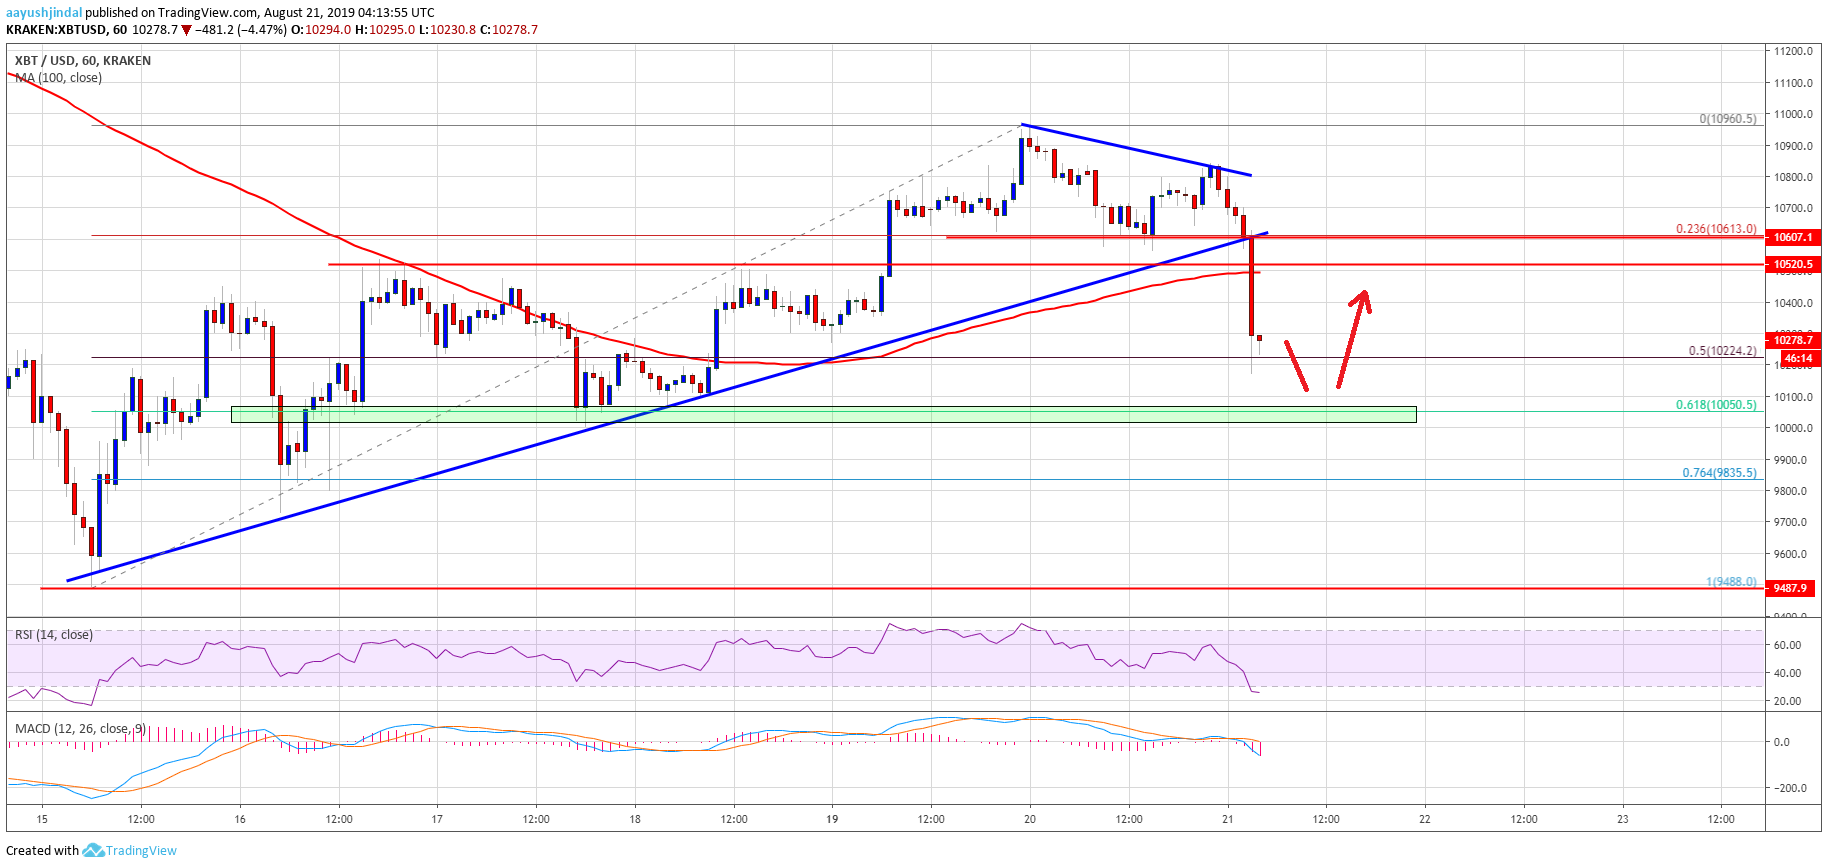 Bitcoin (BTC) Price Recent Breakdown Could Accelerate Decline